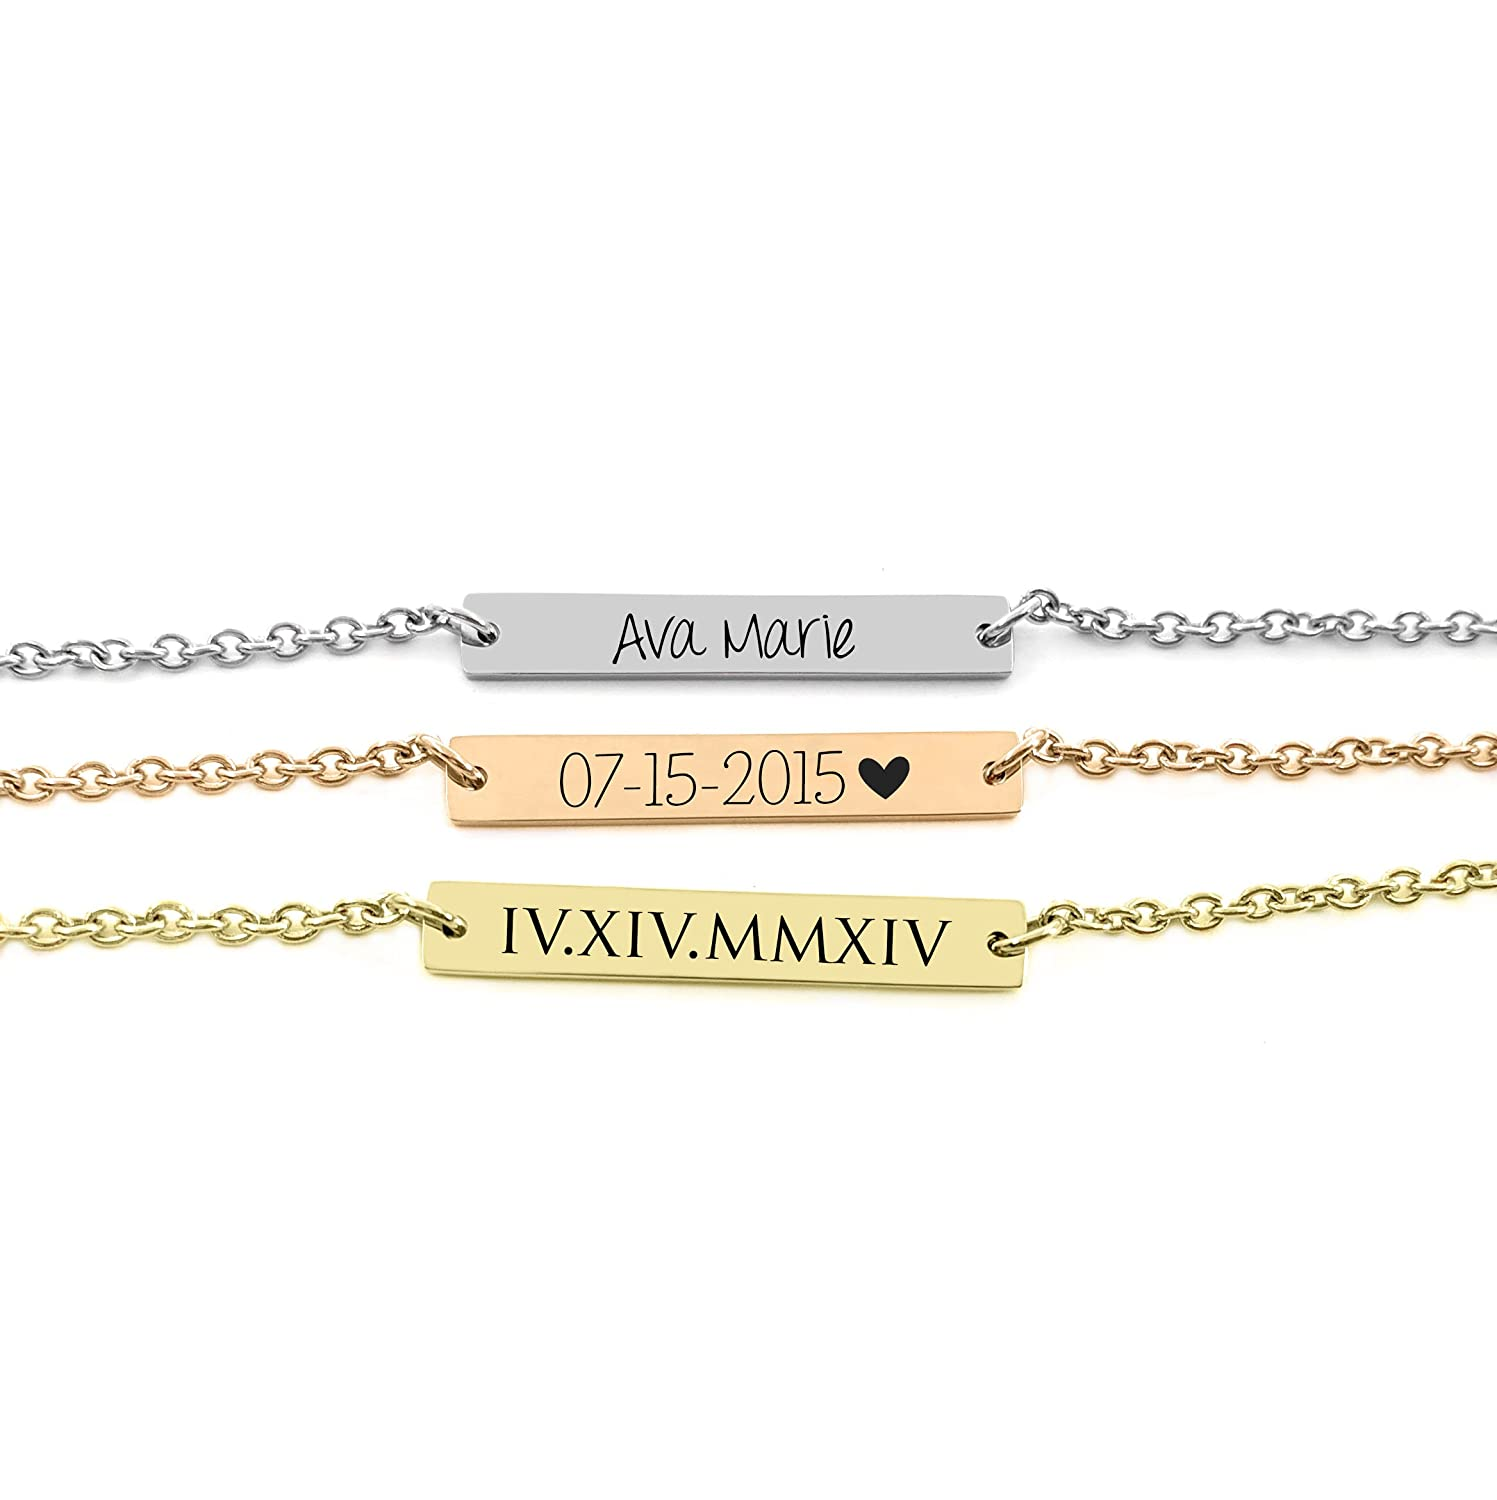 Personalized Bar Bracelet - Gold Silver Rose Gold - Girls Bracelet - Bridesmaid Gift - Mother Best Friend